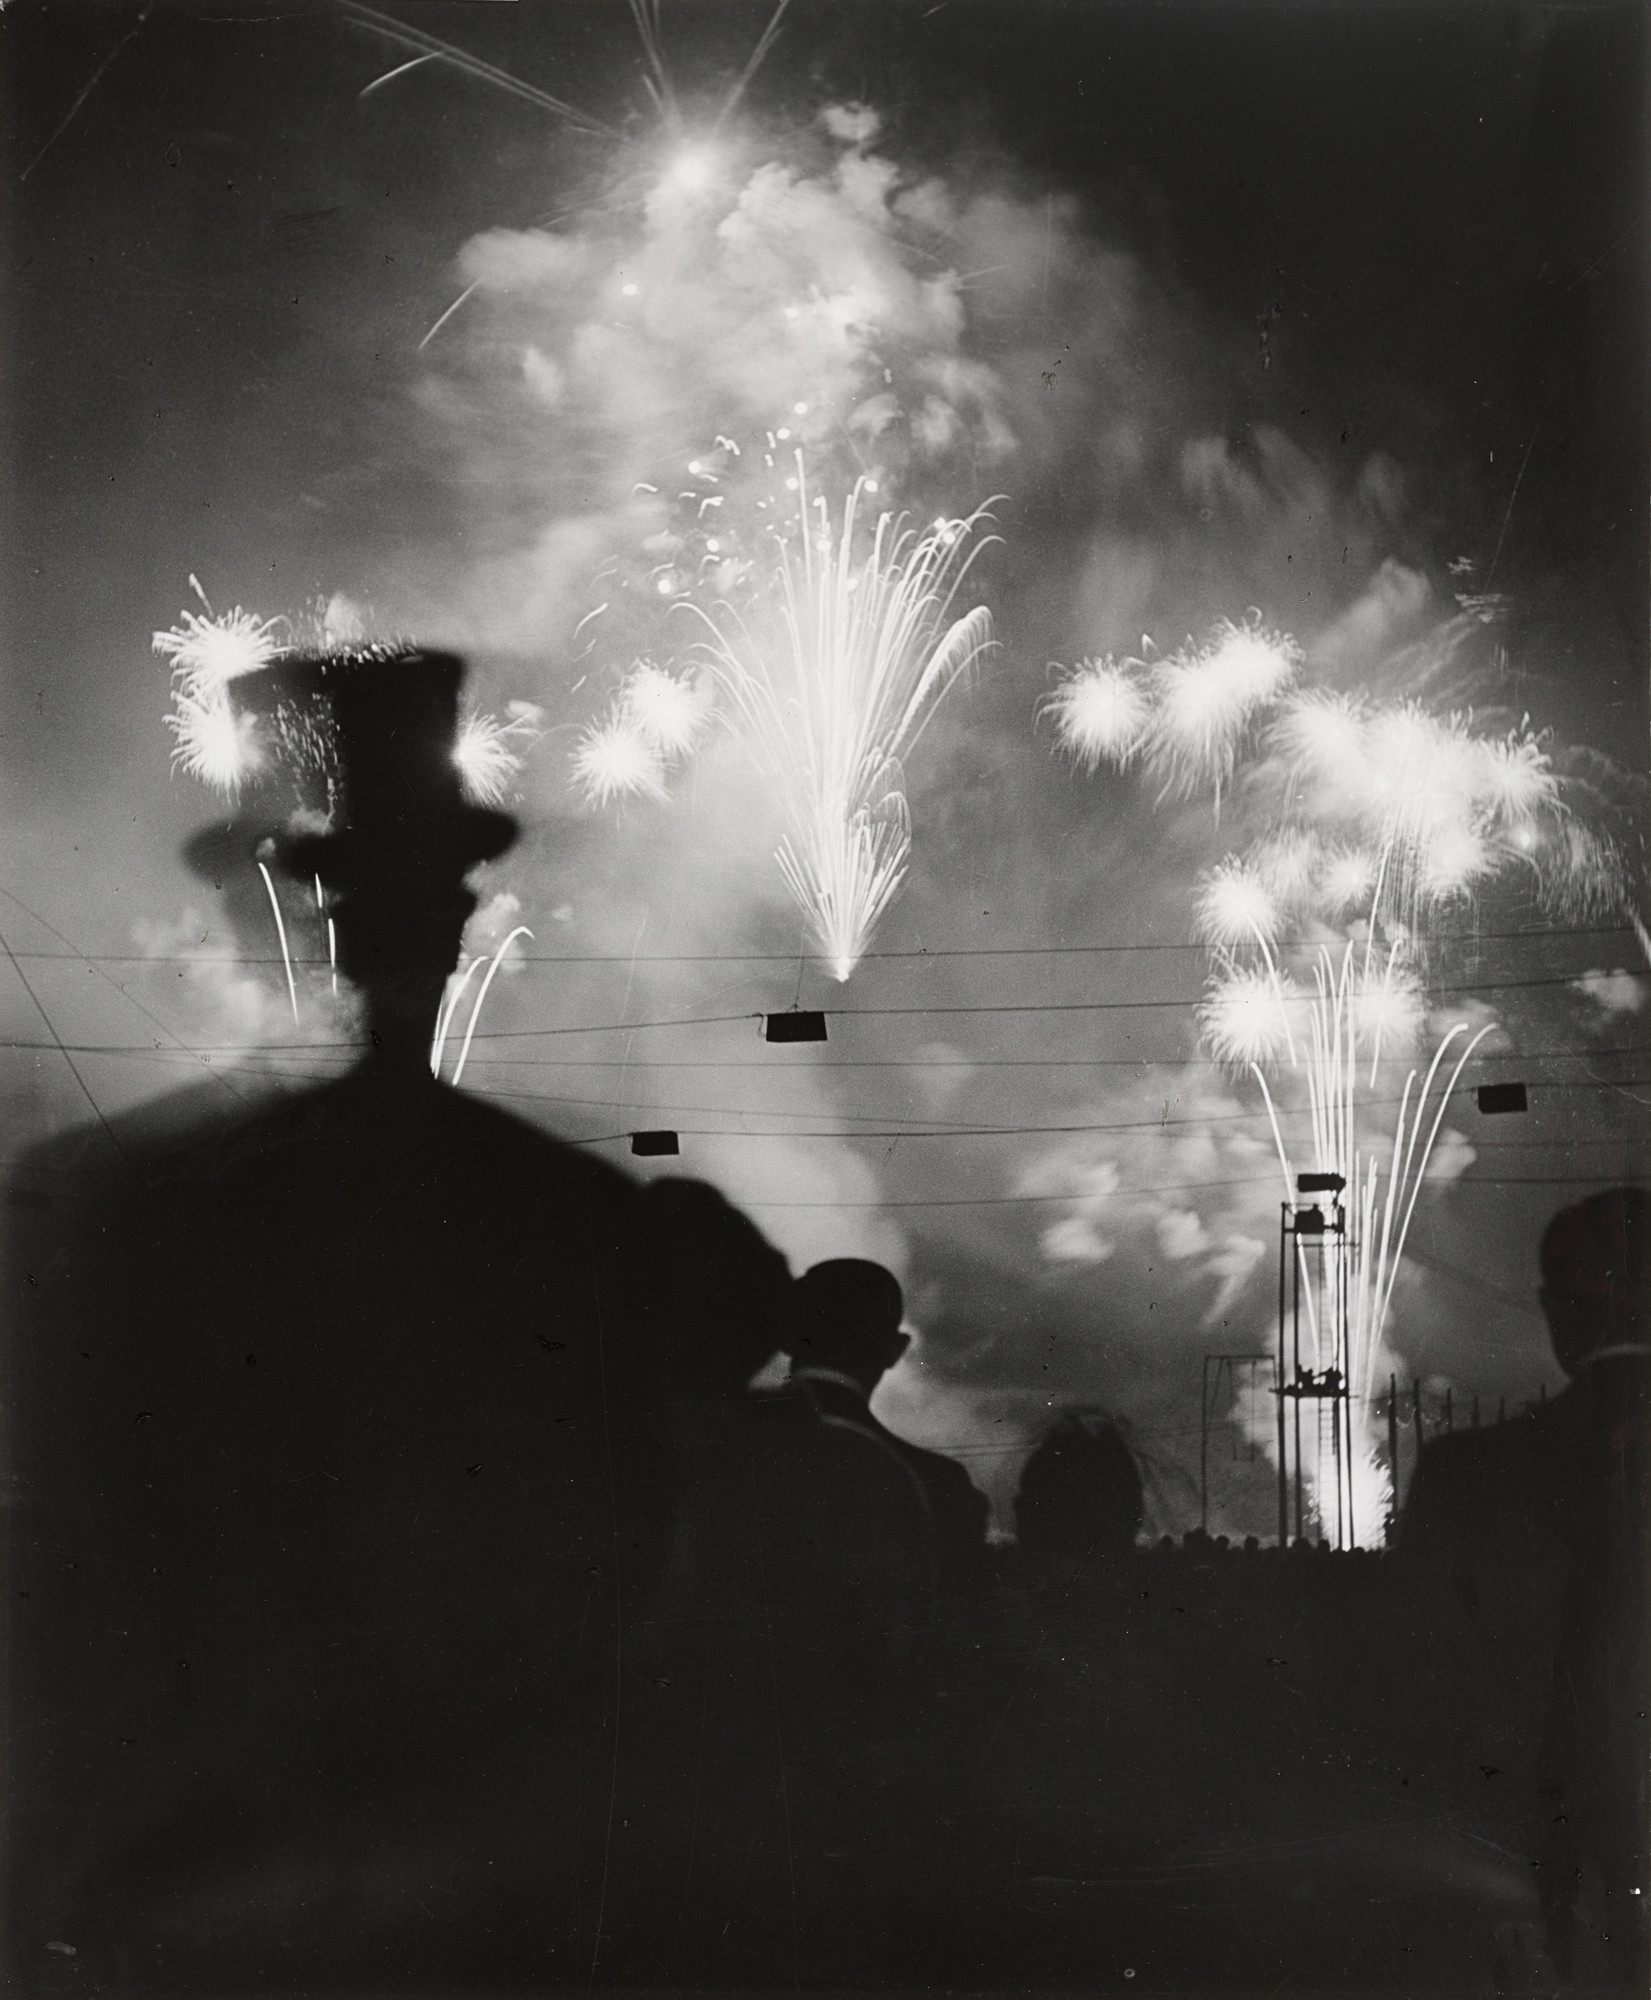 Brassaï (Gyula Halász). Fireworks on the Night of Longchamp. 1936